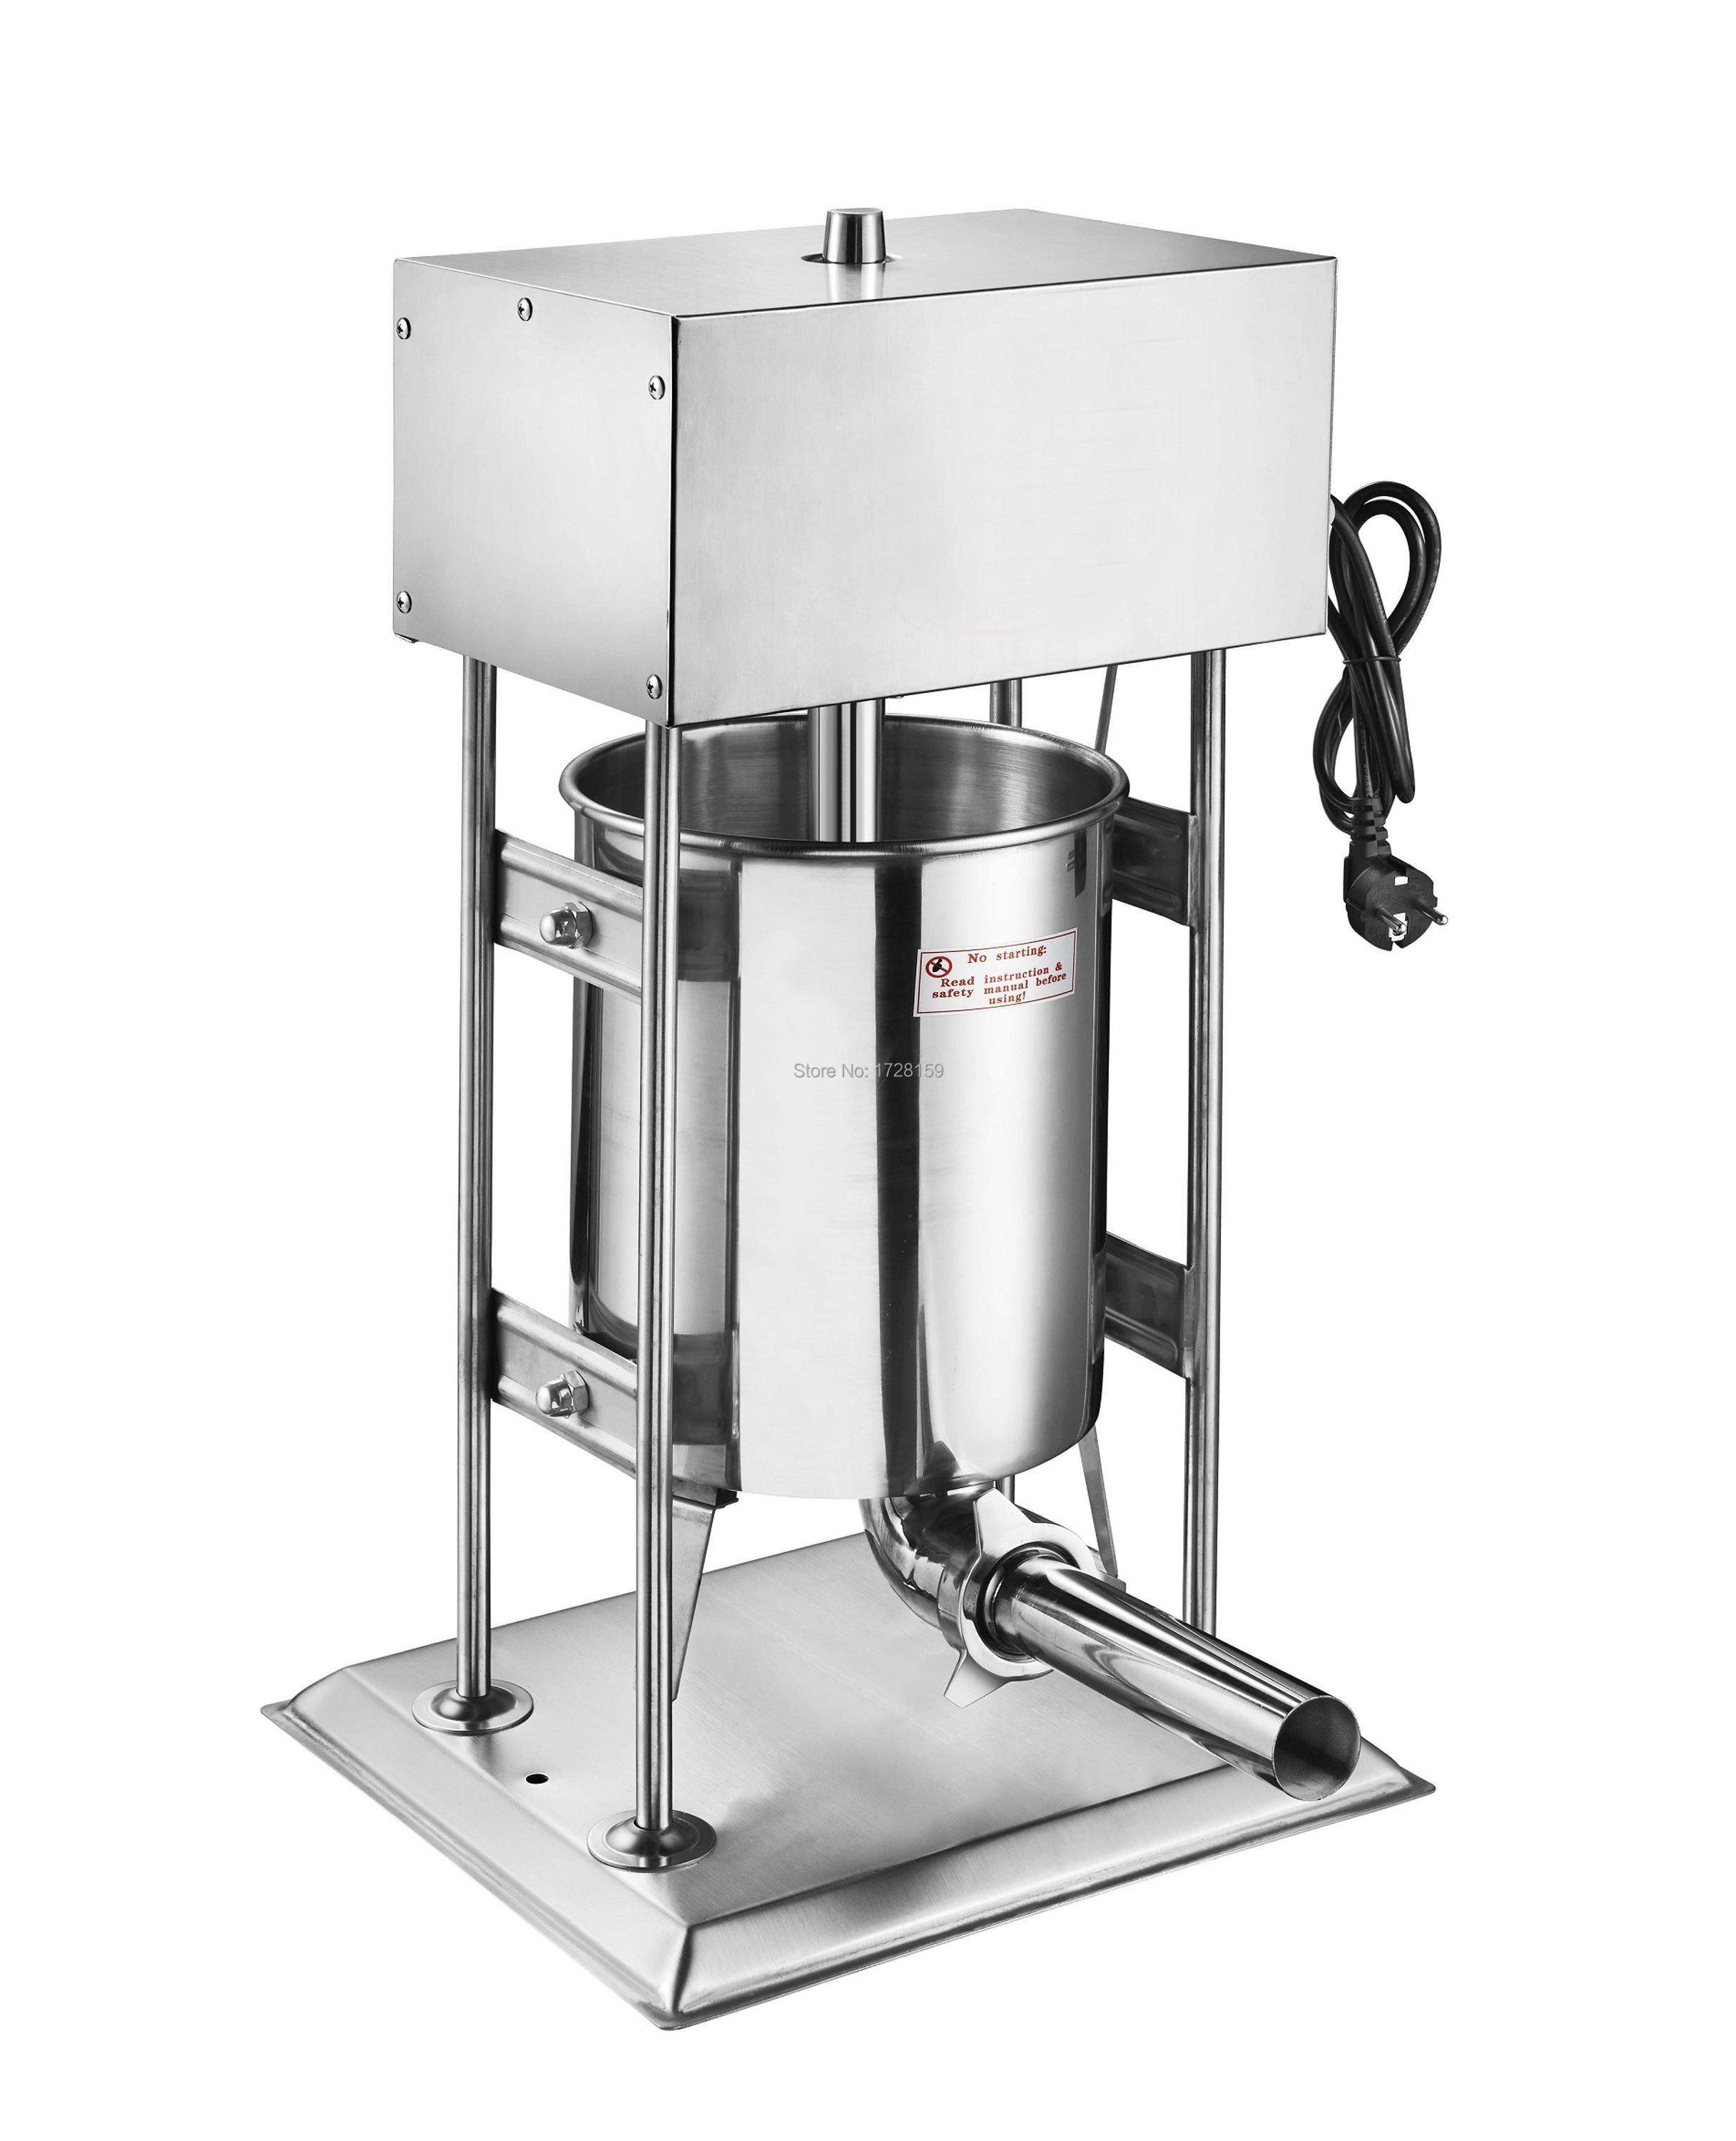 12L Automatic Vertical Stainless Steel Commercial Electric Sausage Stuffer Filller Machine new automatic stainless steel commercial vegetable